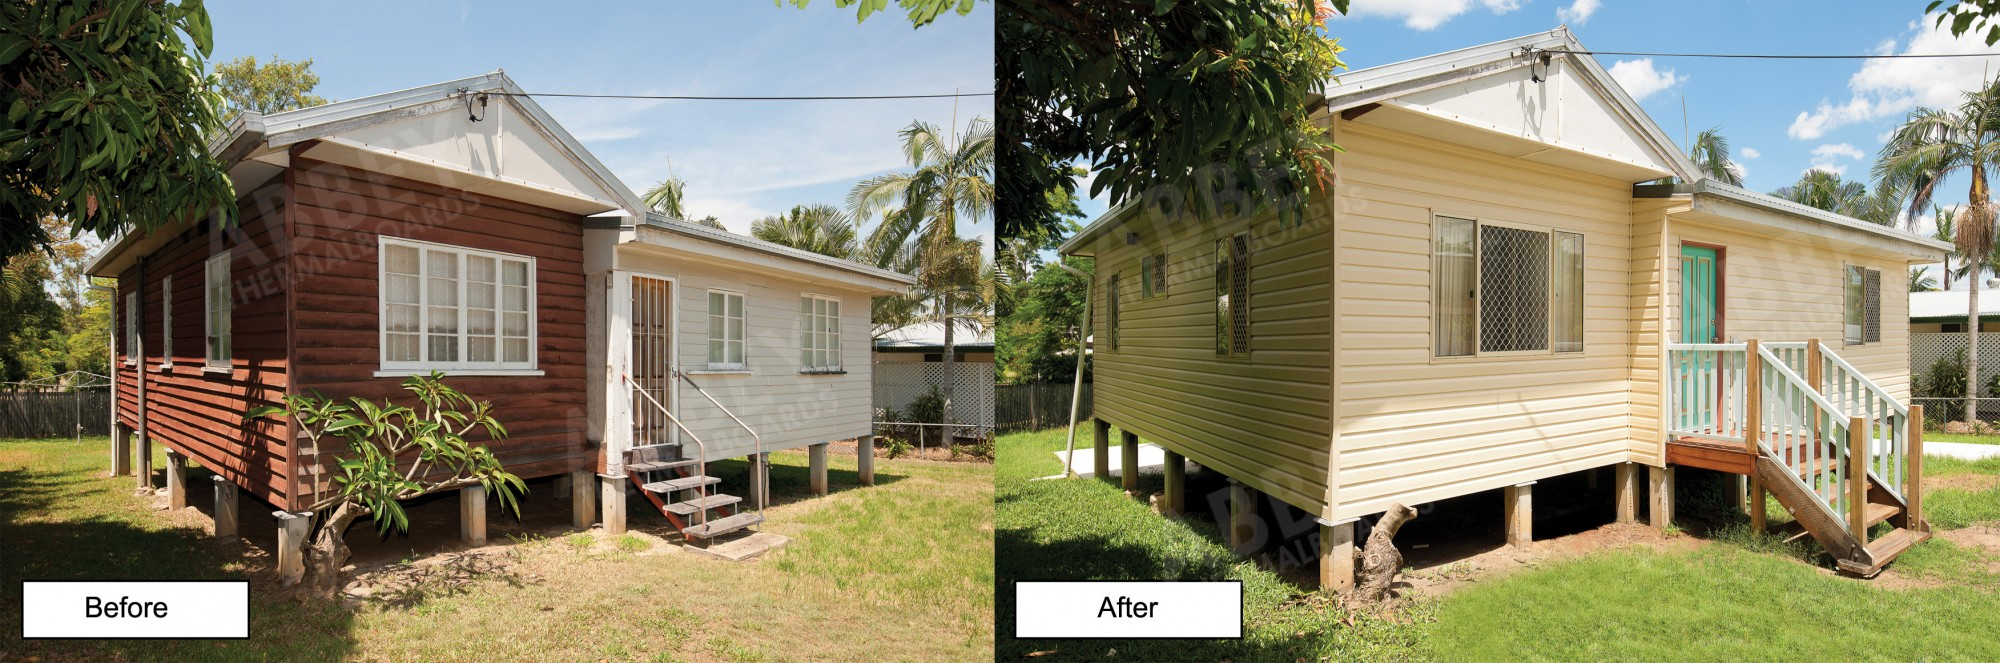 Before and after of this cladding job done by Abbey.